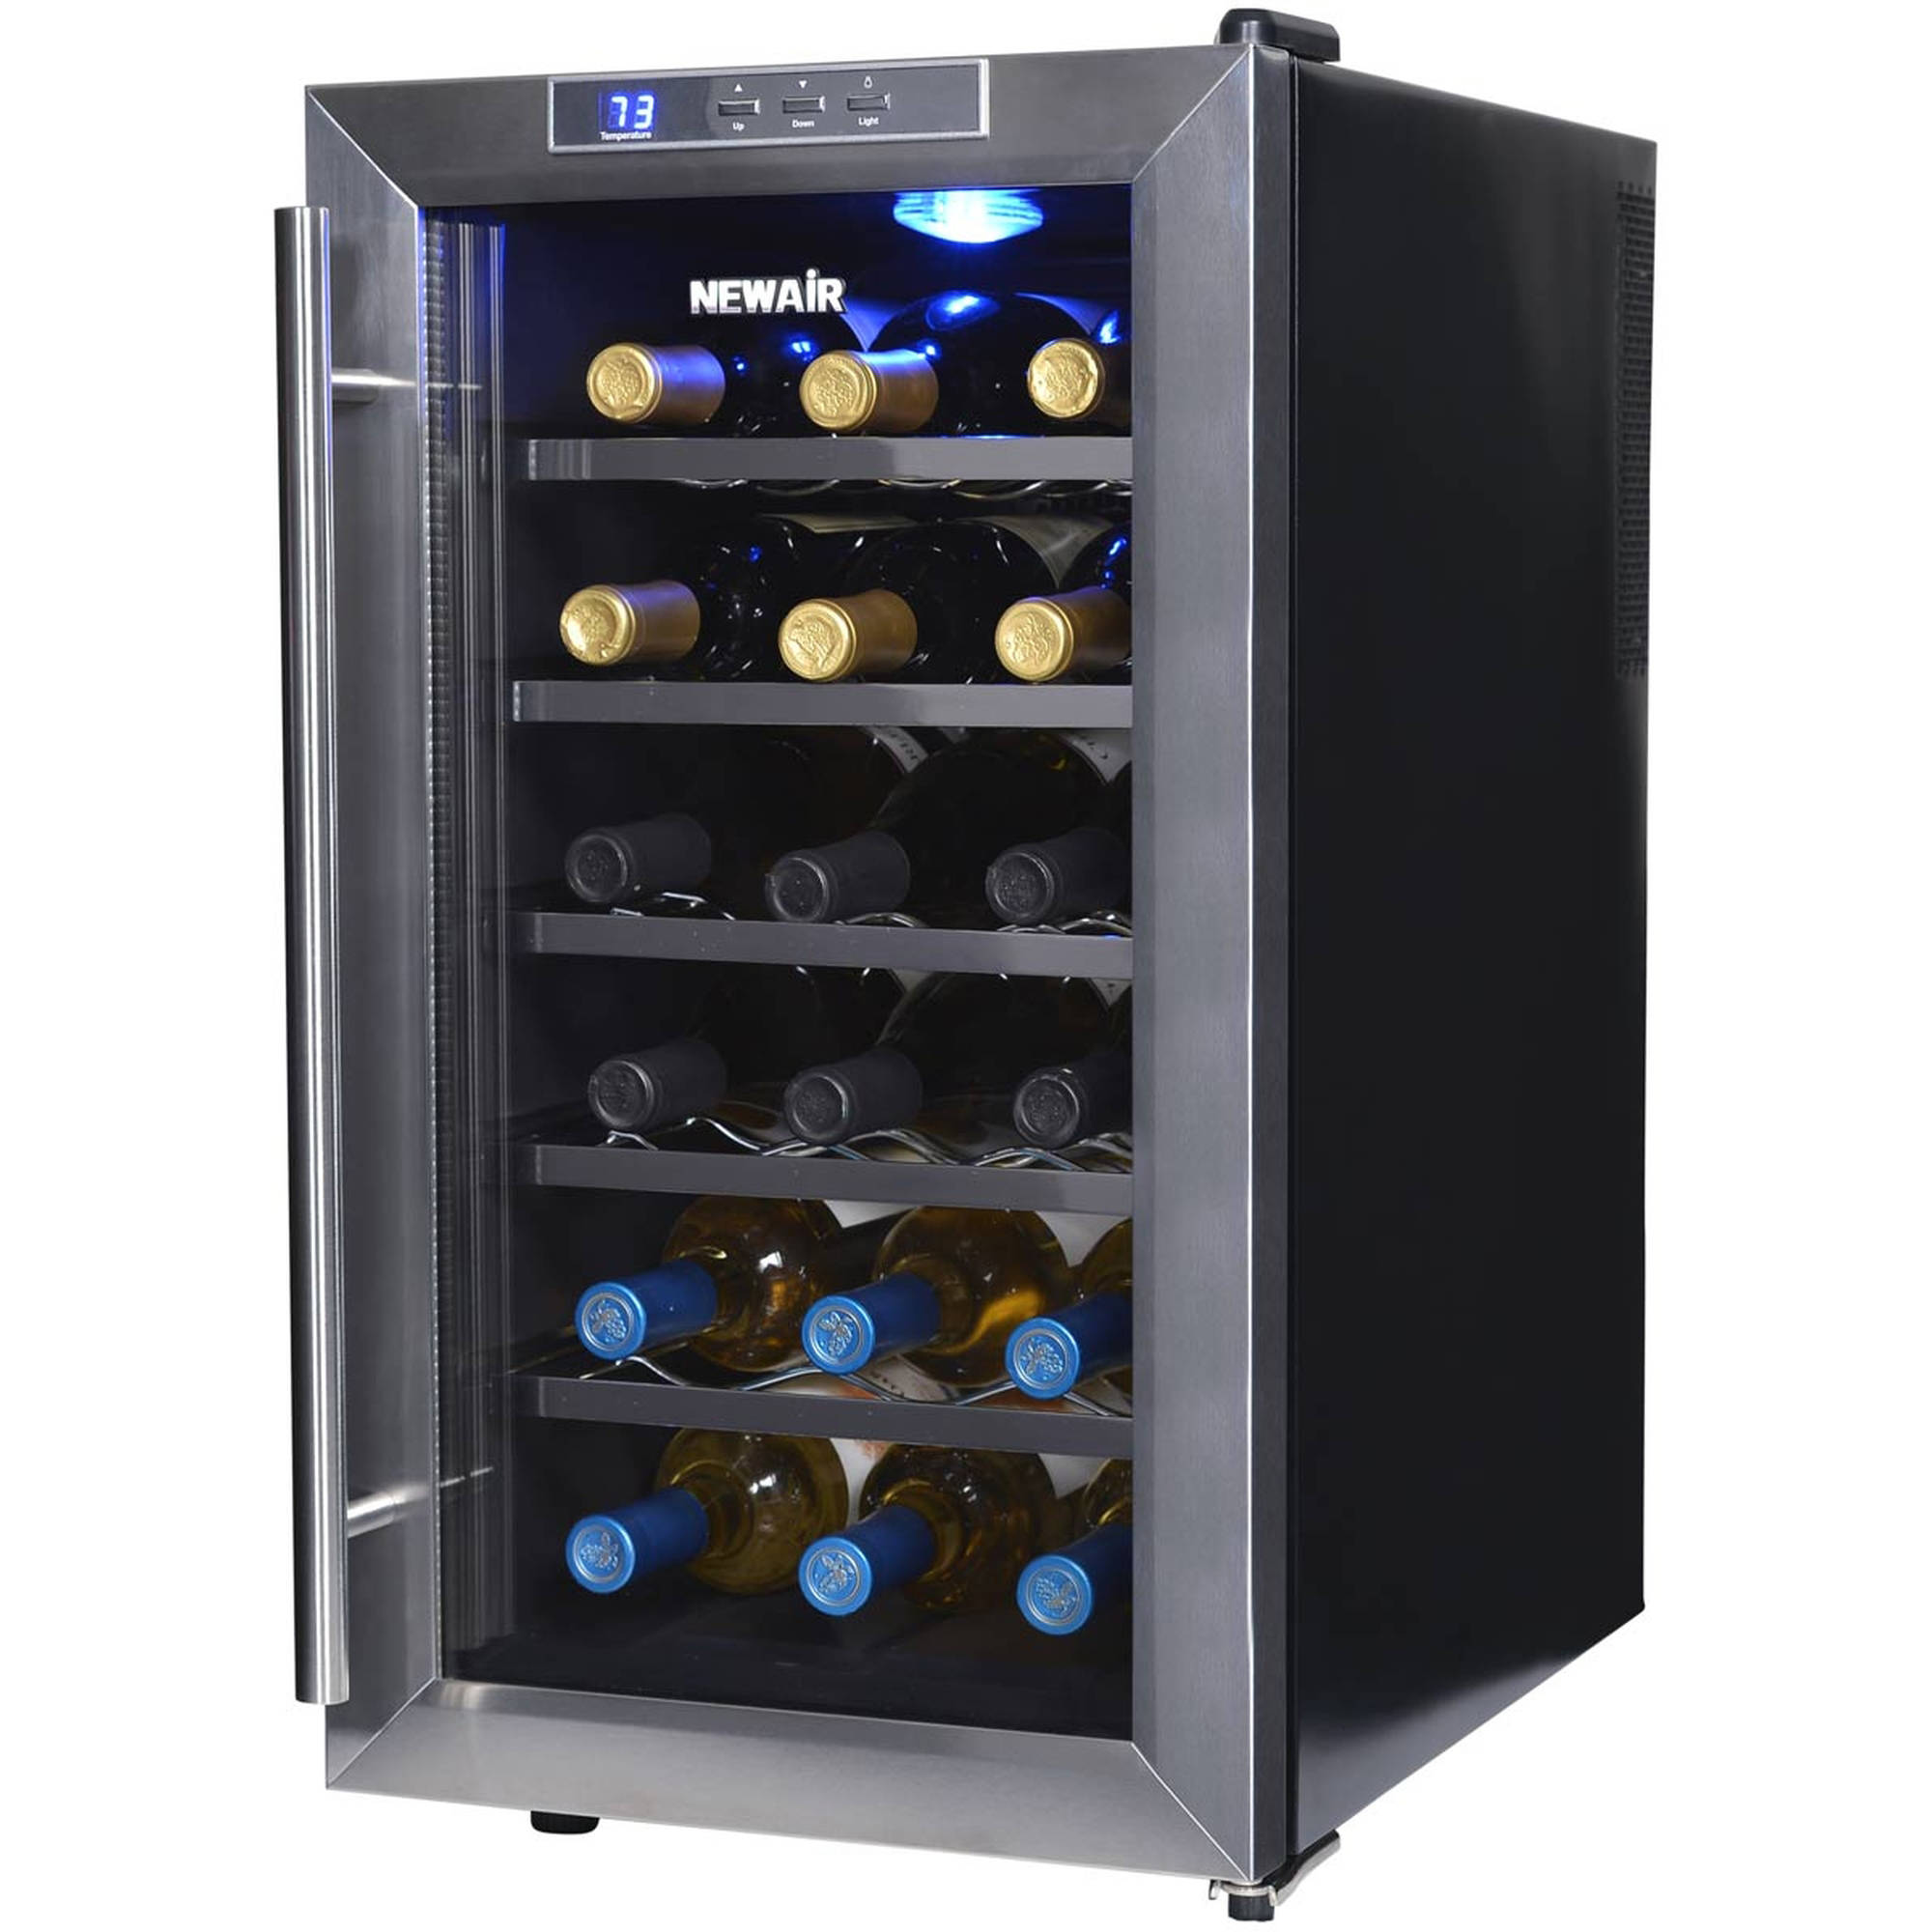 NewAir 18-Bottle Thermoelectric Wine Refrigerator, Stainless Steel and Black